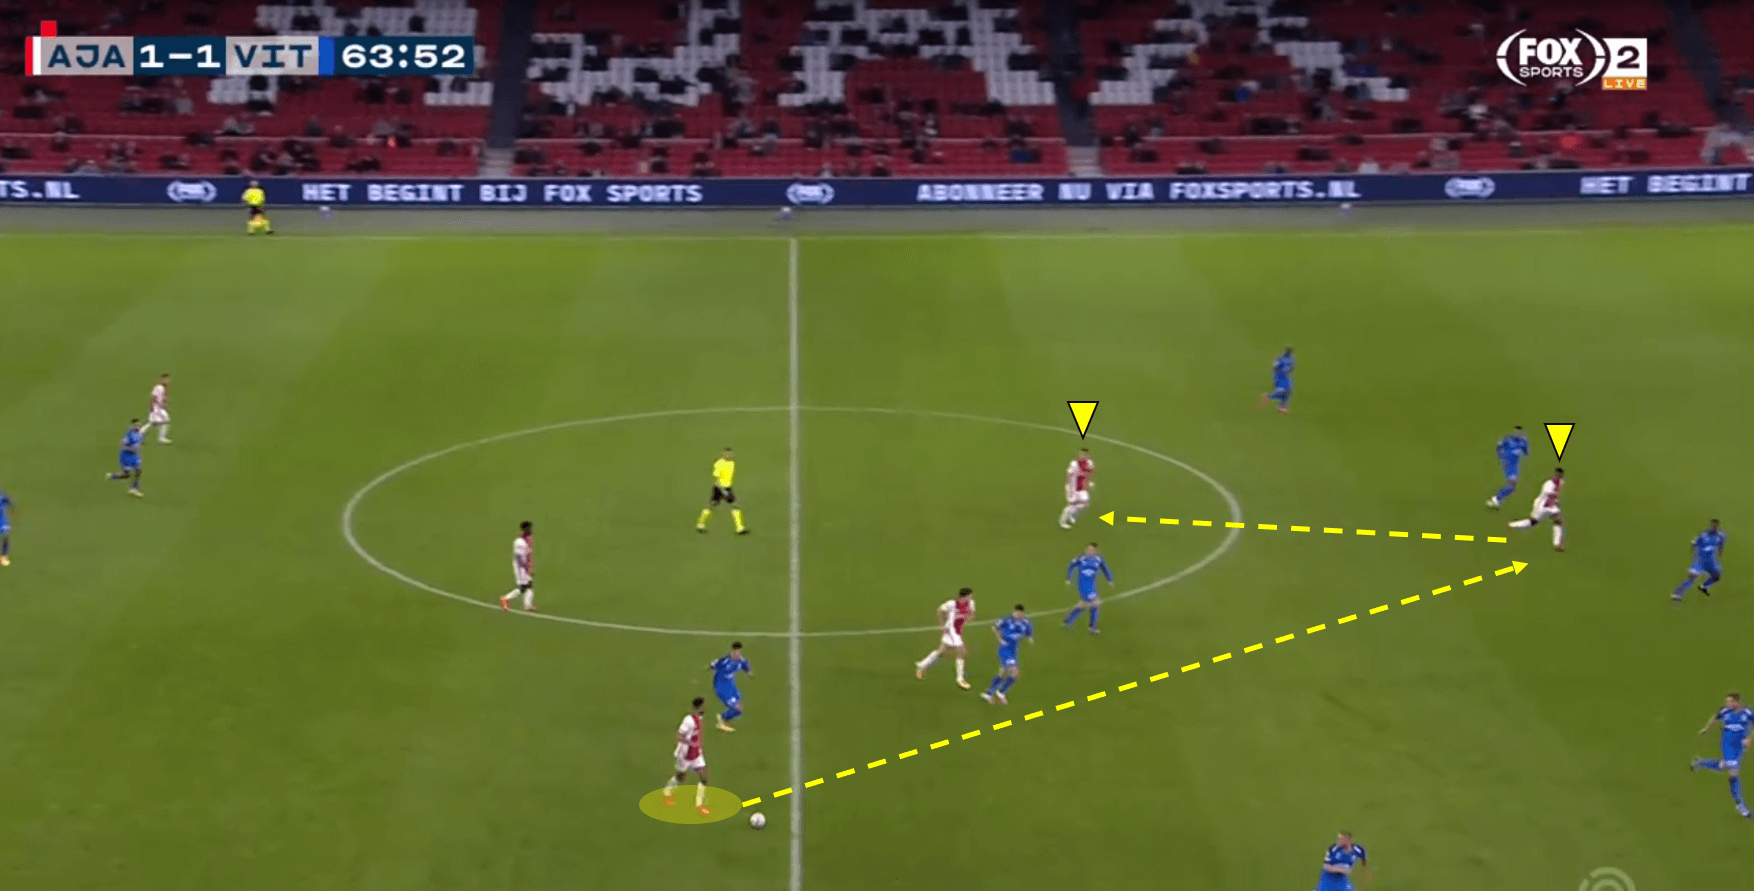 Eredivisie 2020/21: Ajax vs Vitesse – Tactical Analysis Tactics